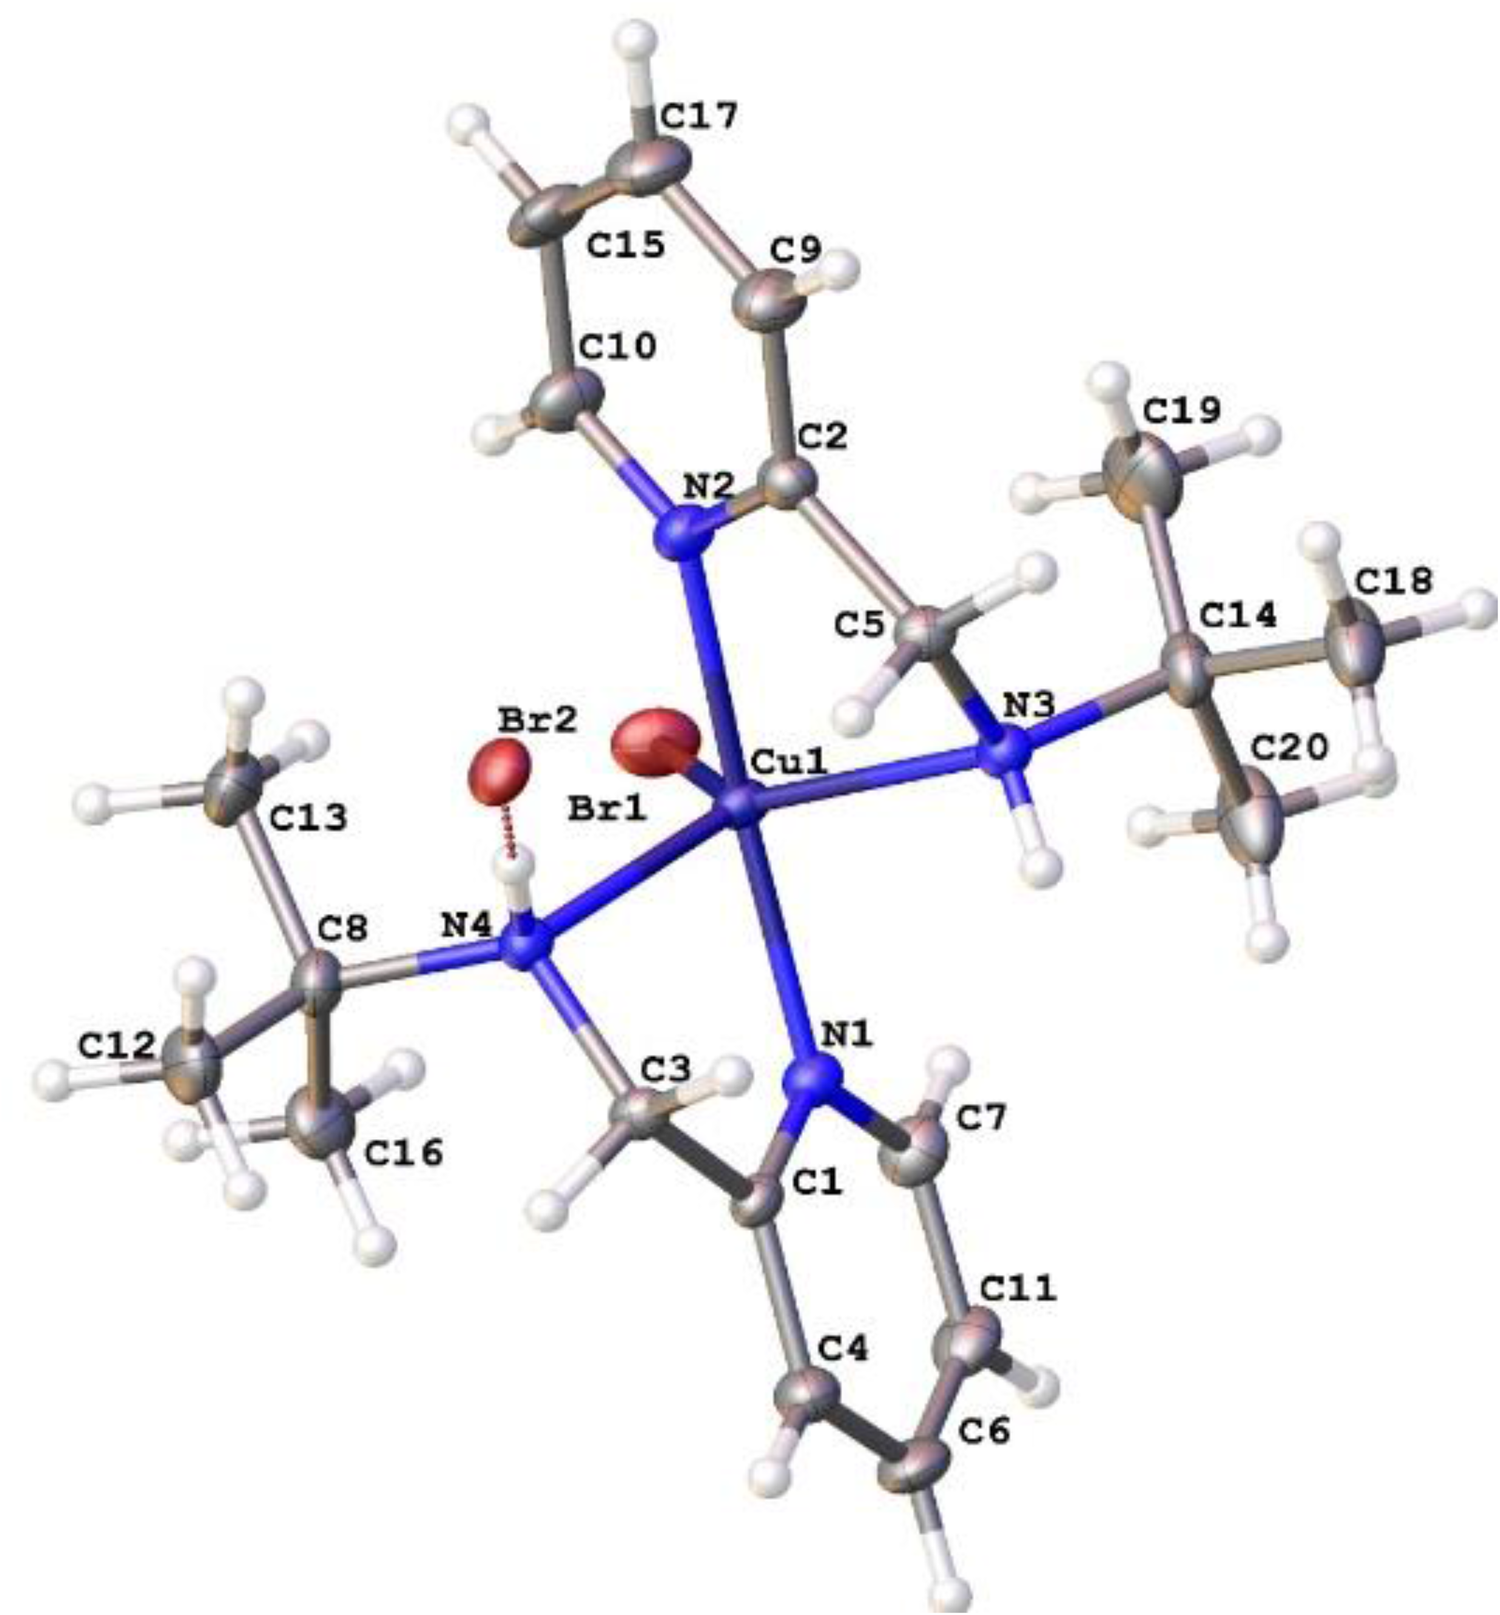 Mononuclear copper(II) complexes containing chelating ligand of 2